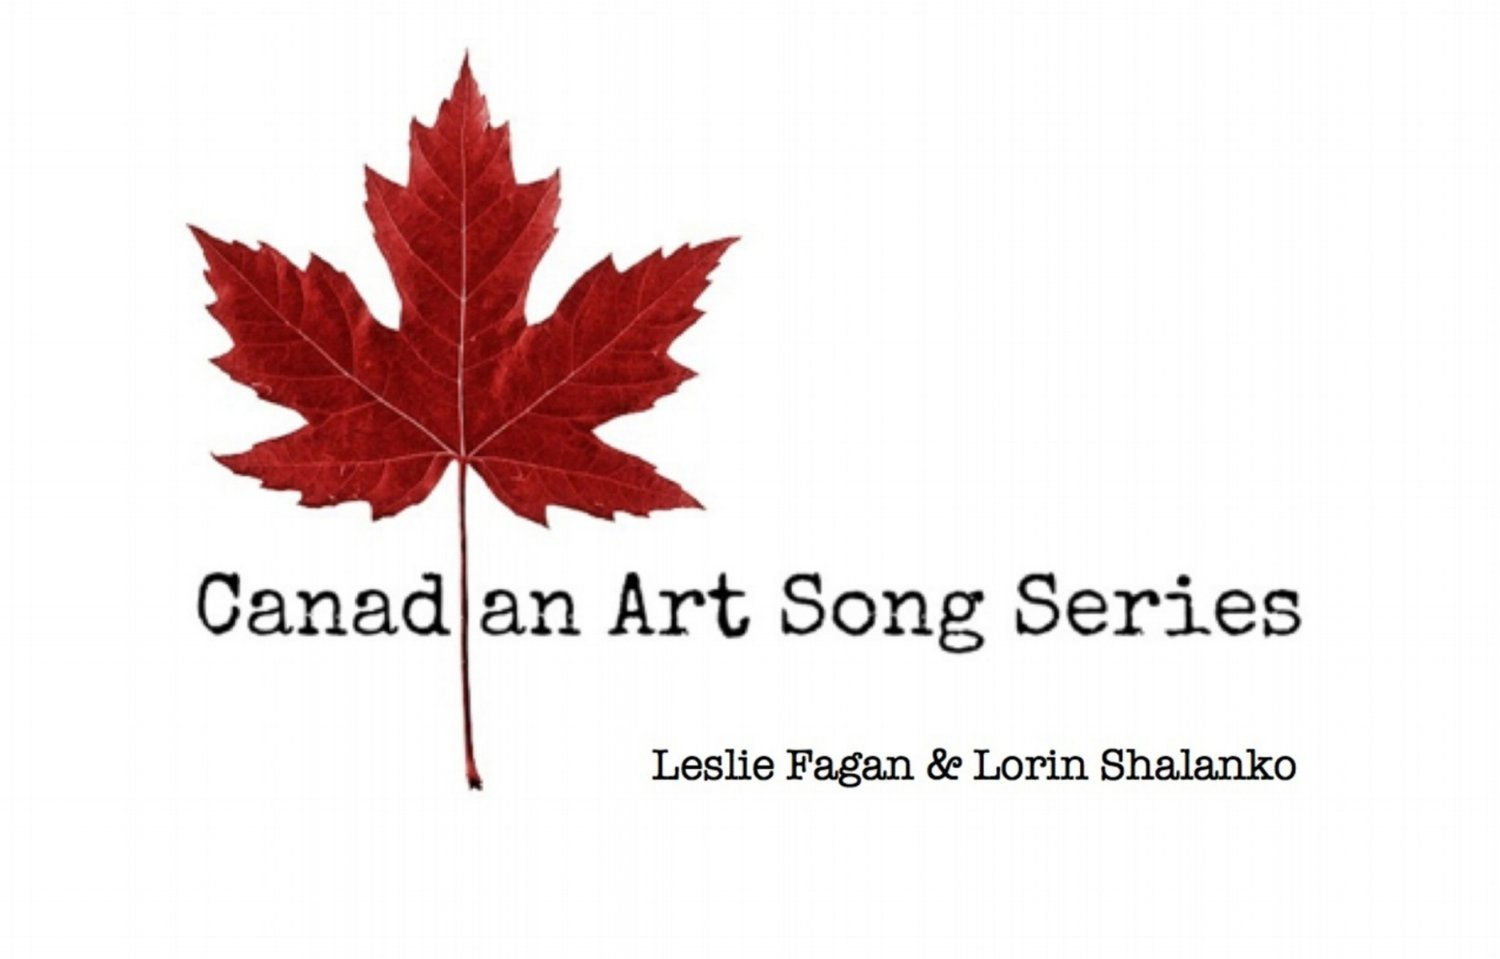 Canadian Art Song Series